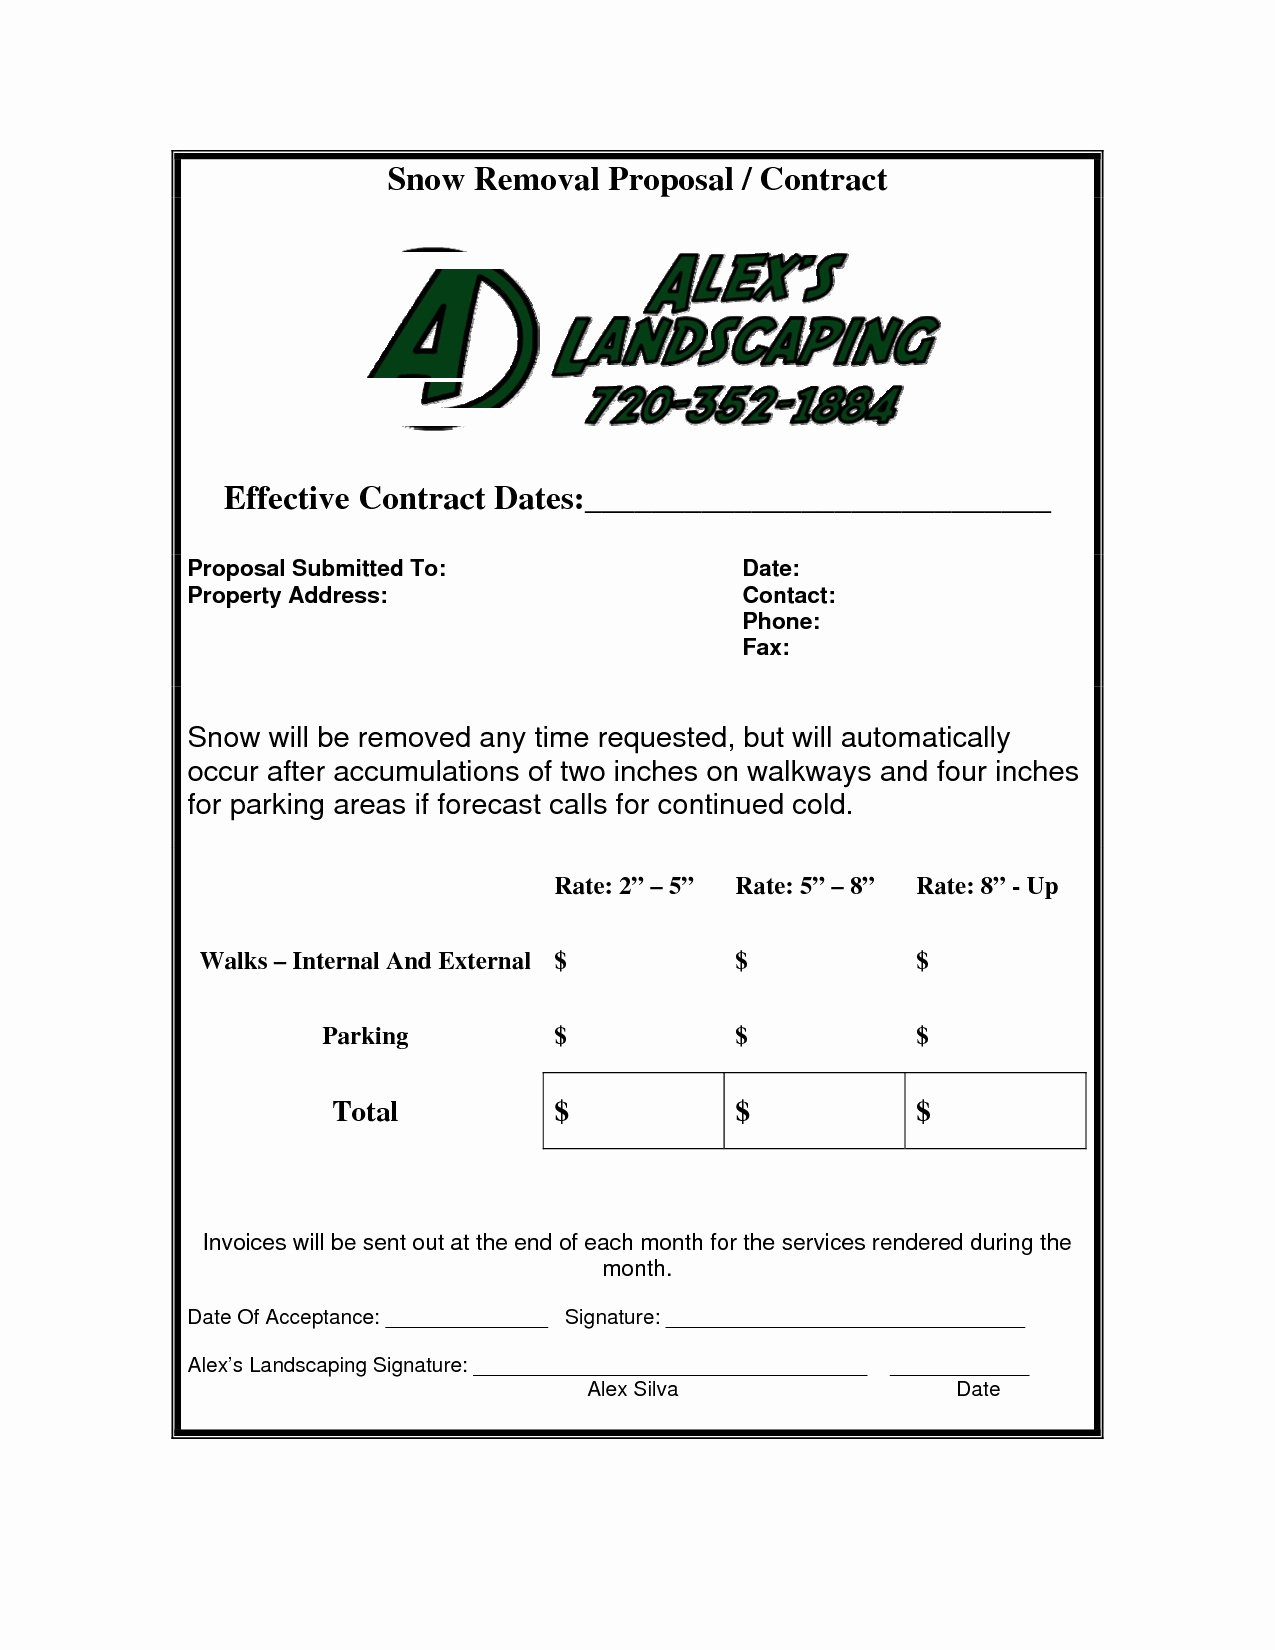 Snow Removal Contract Templates Awesome Snow Removal Invoice Invoice Template Ideas